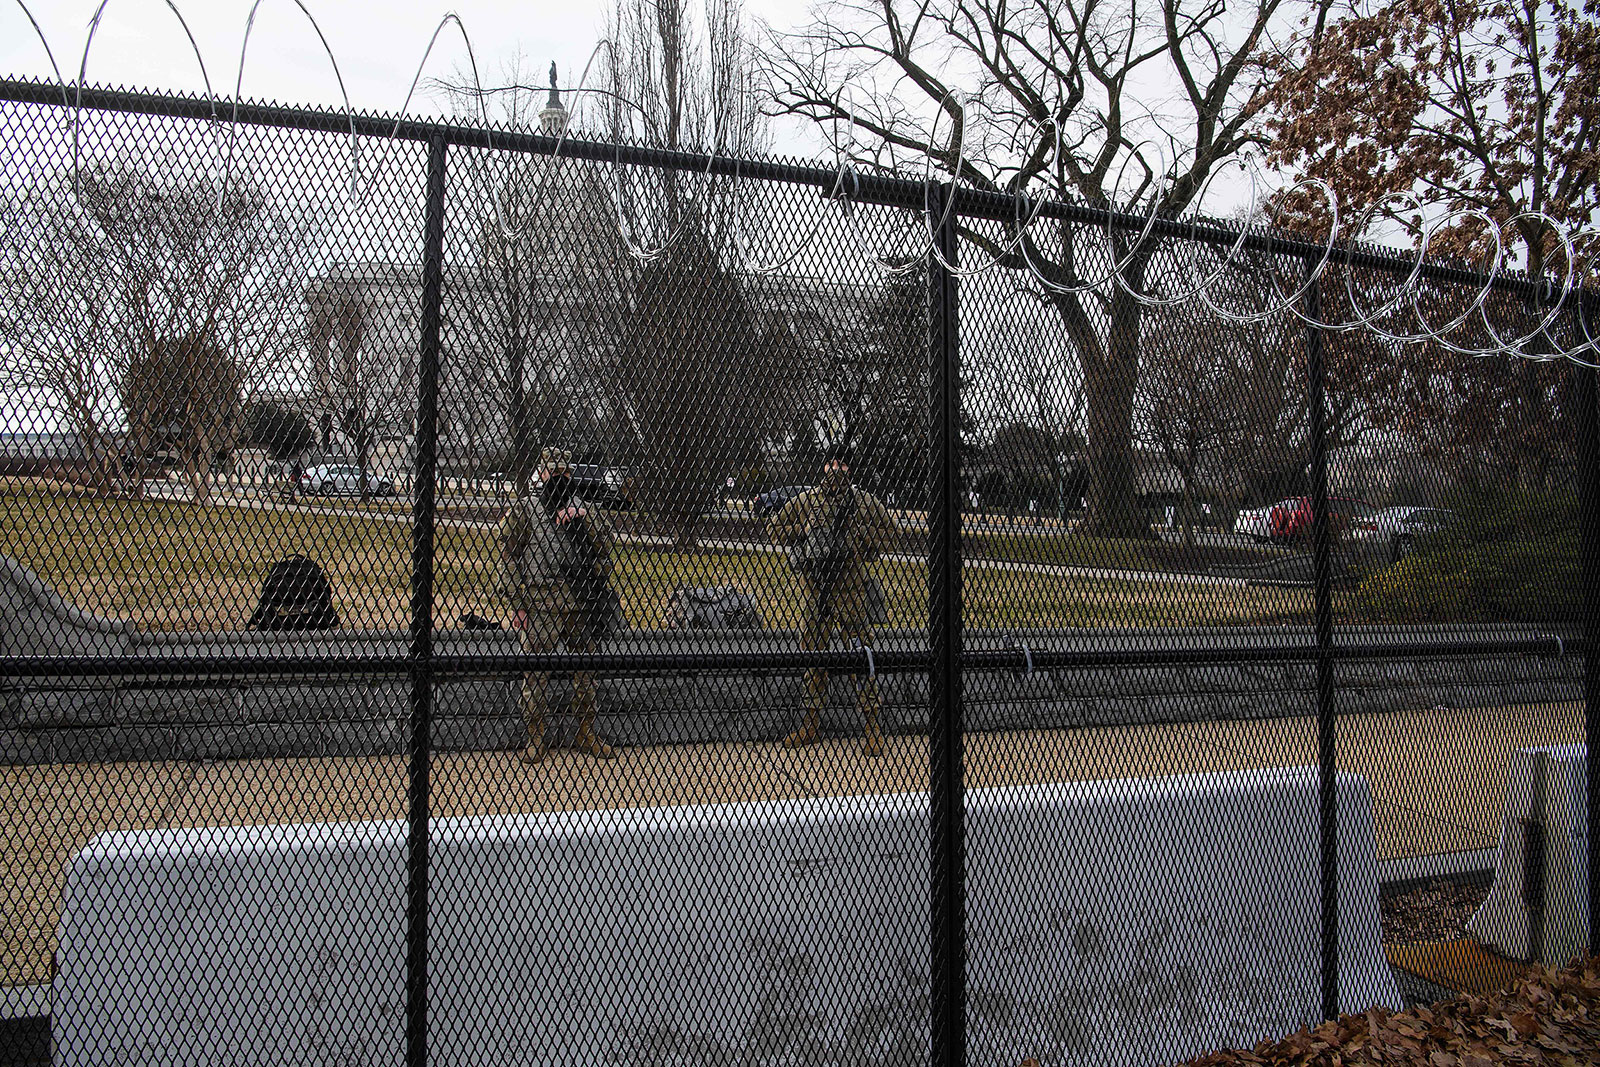 Members of the National Guard stand by the US Capitol in Washington, DC, on February 9, 2021 before the start of former US president Donald Trump's second Senate impeachment trial. - The US Senate gavels in Tuesday on Donald Trump's historic second impeachment trial, with his defense team decrying it as a